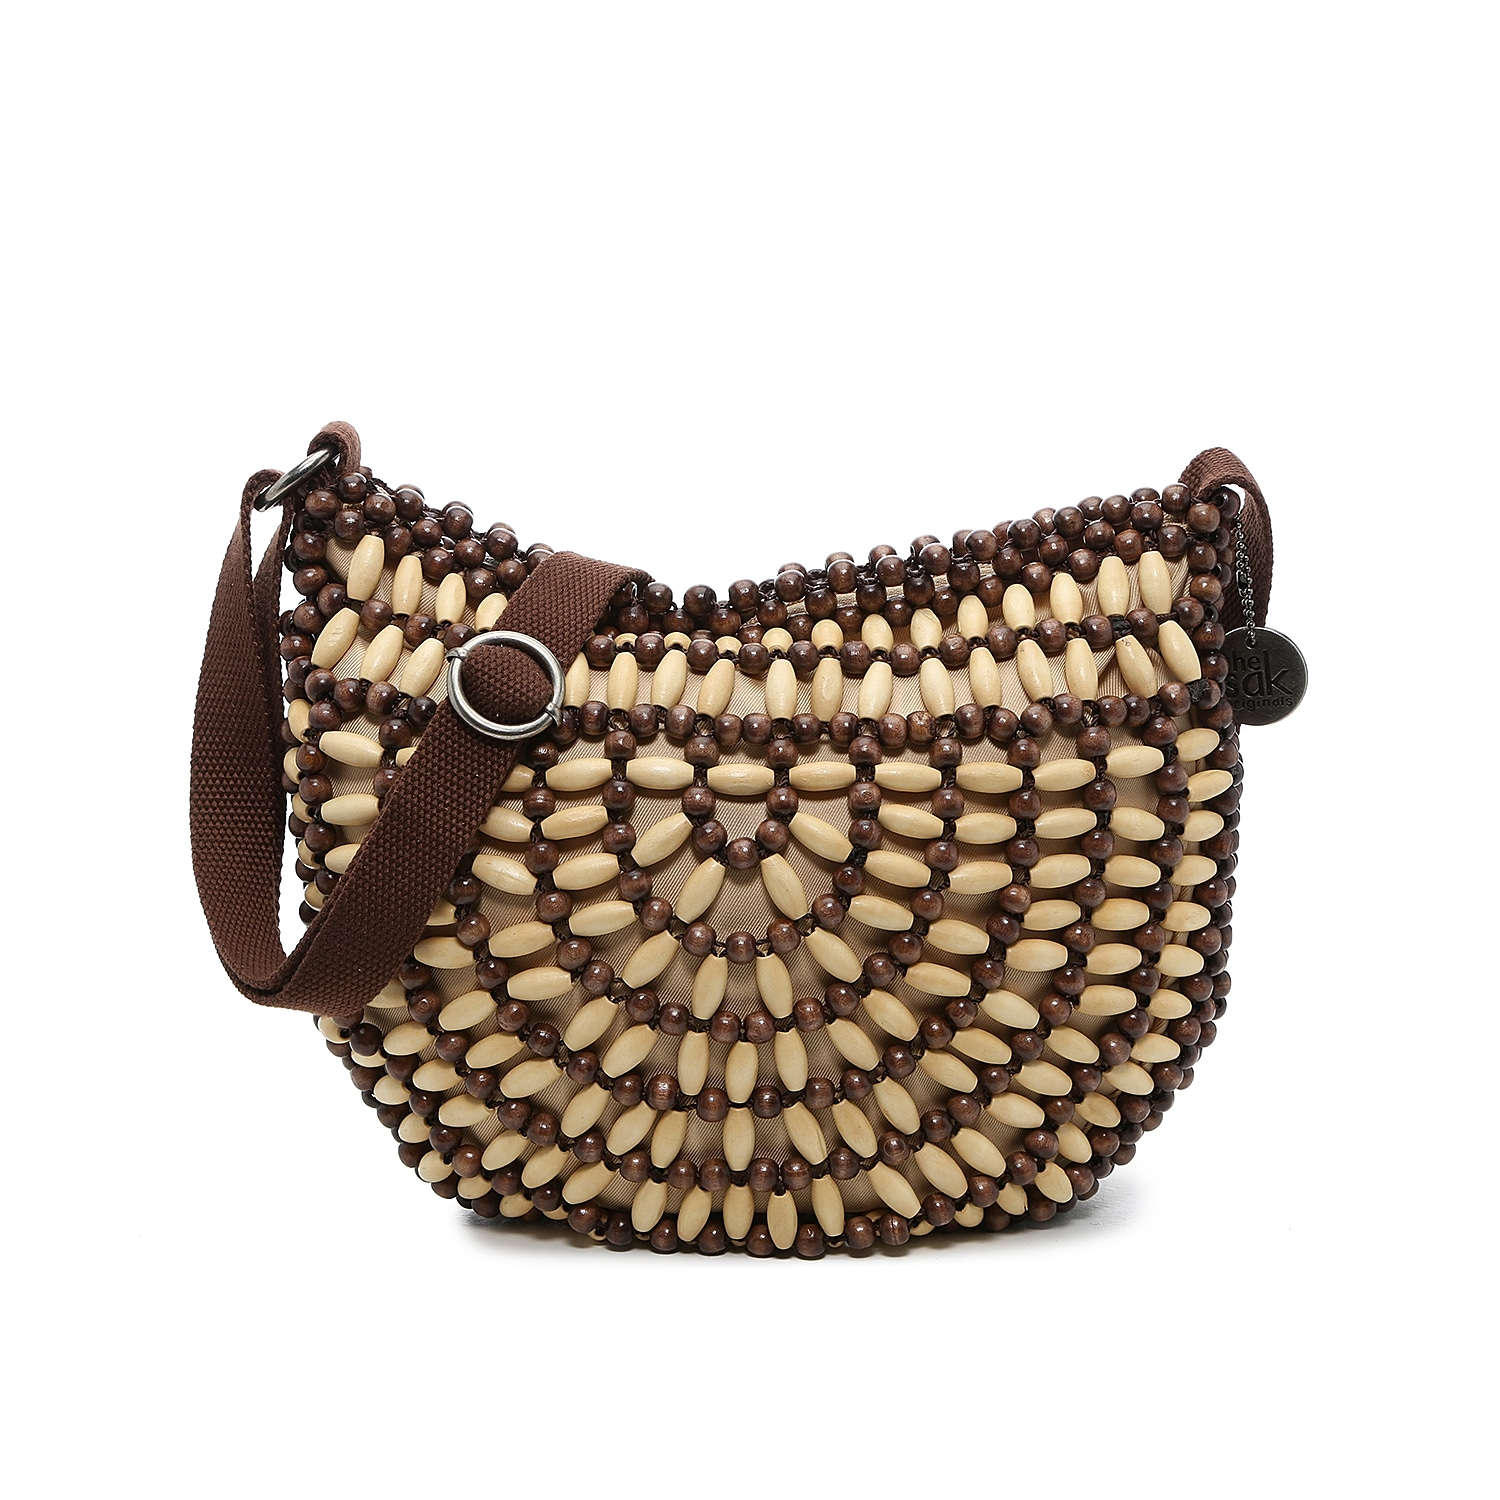 The Ryder crossbody bag from The Sak is the ideal pick for yaer-round adventuring. A crochet design and hand-beaded accents lend natural texture and appeal to this zippered shoulder bag.